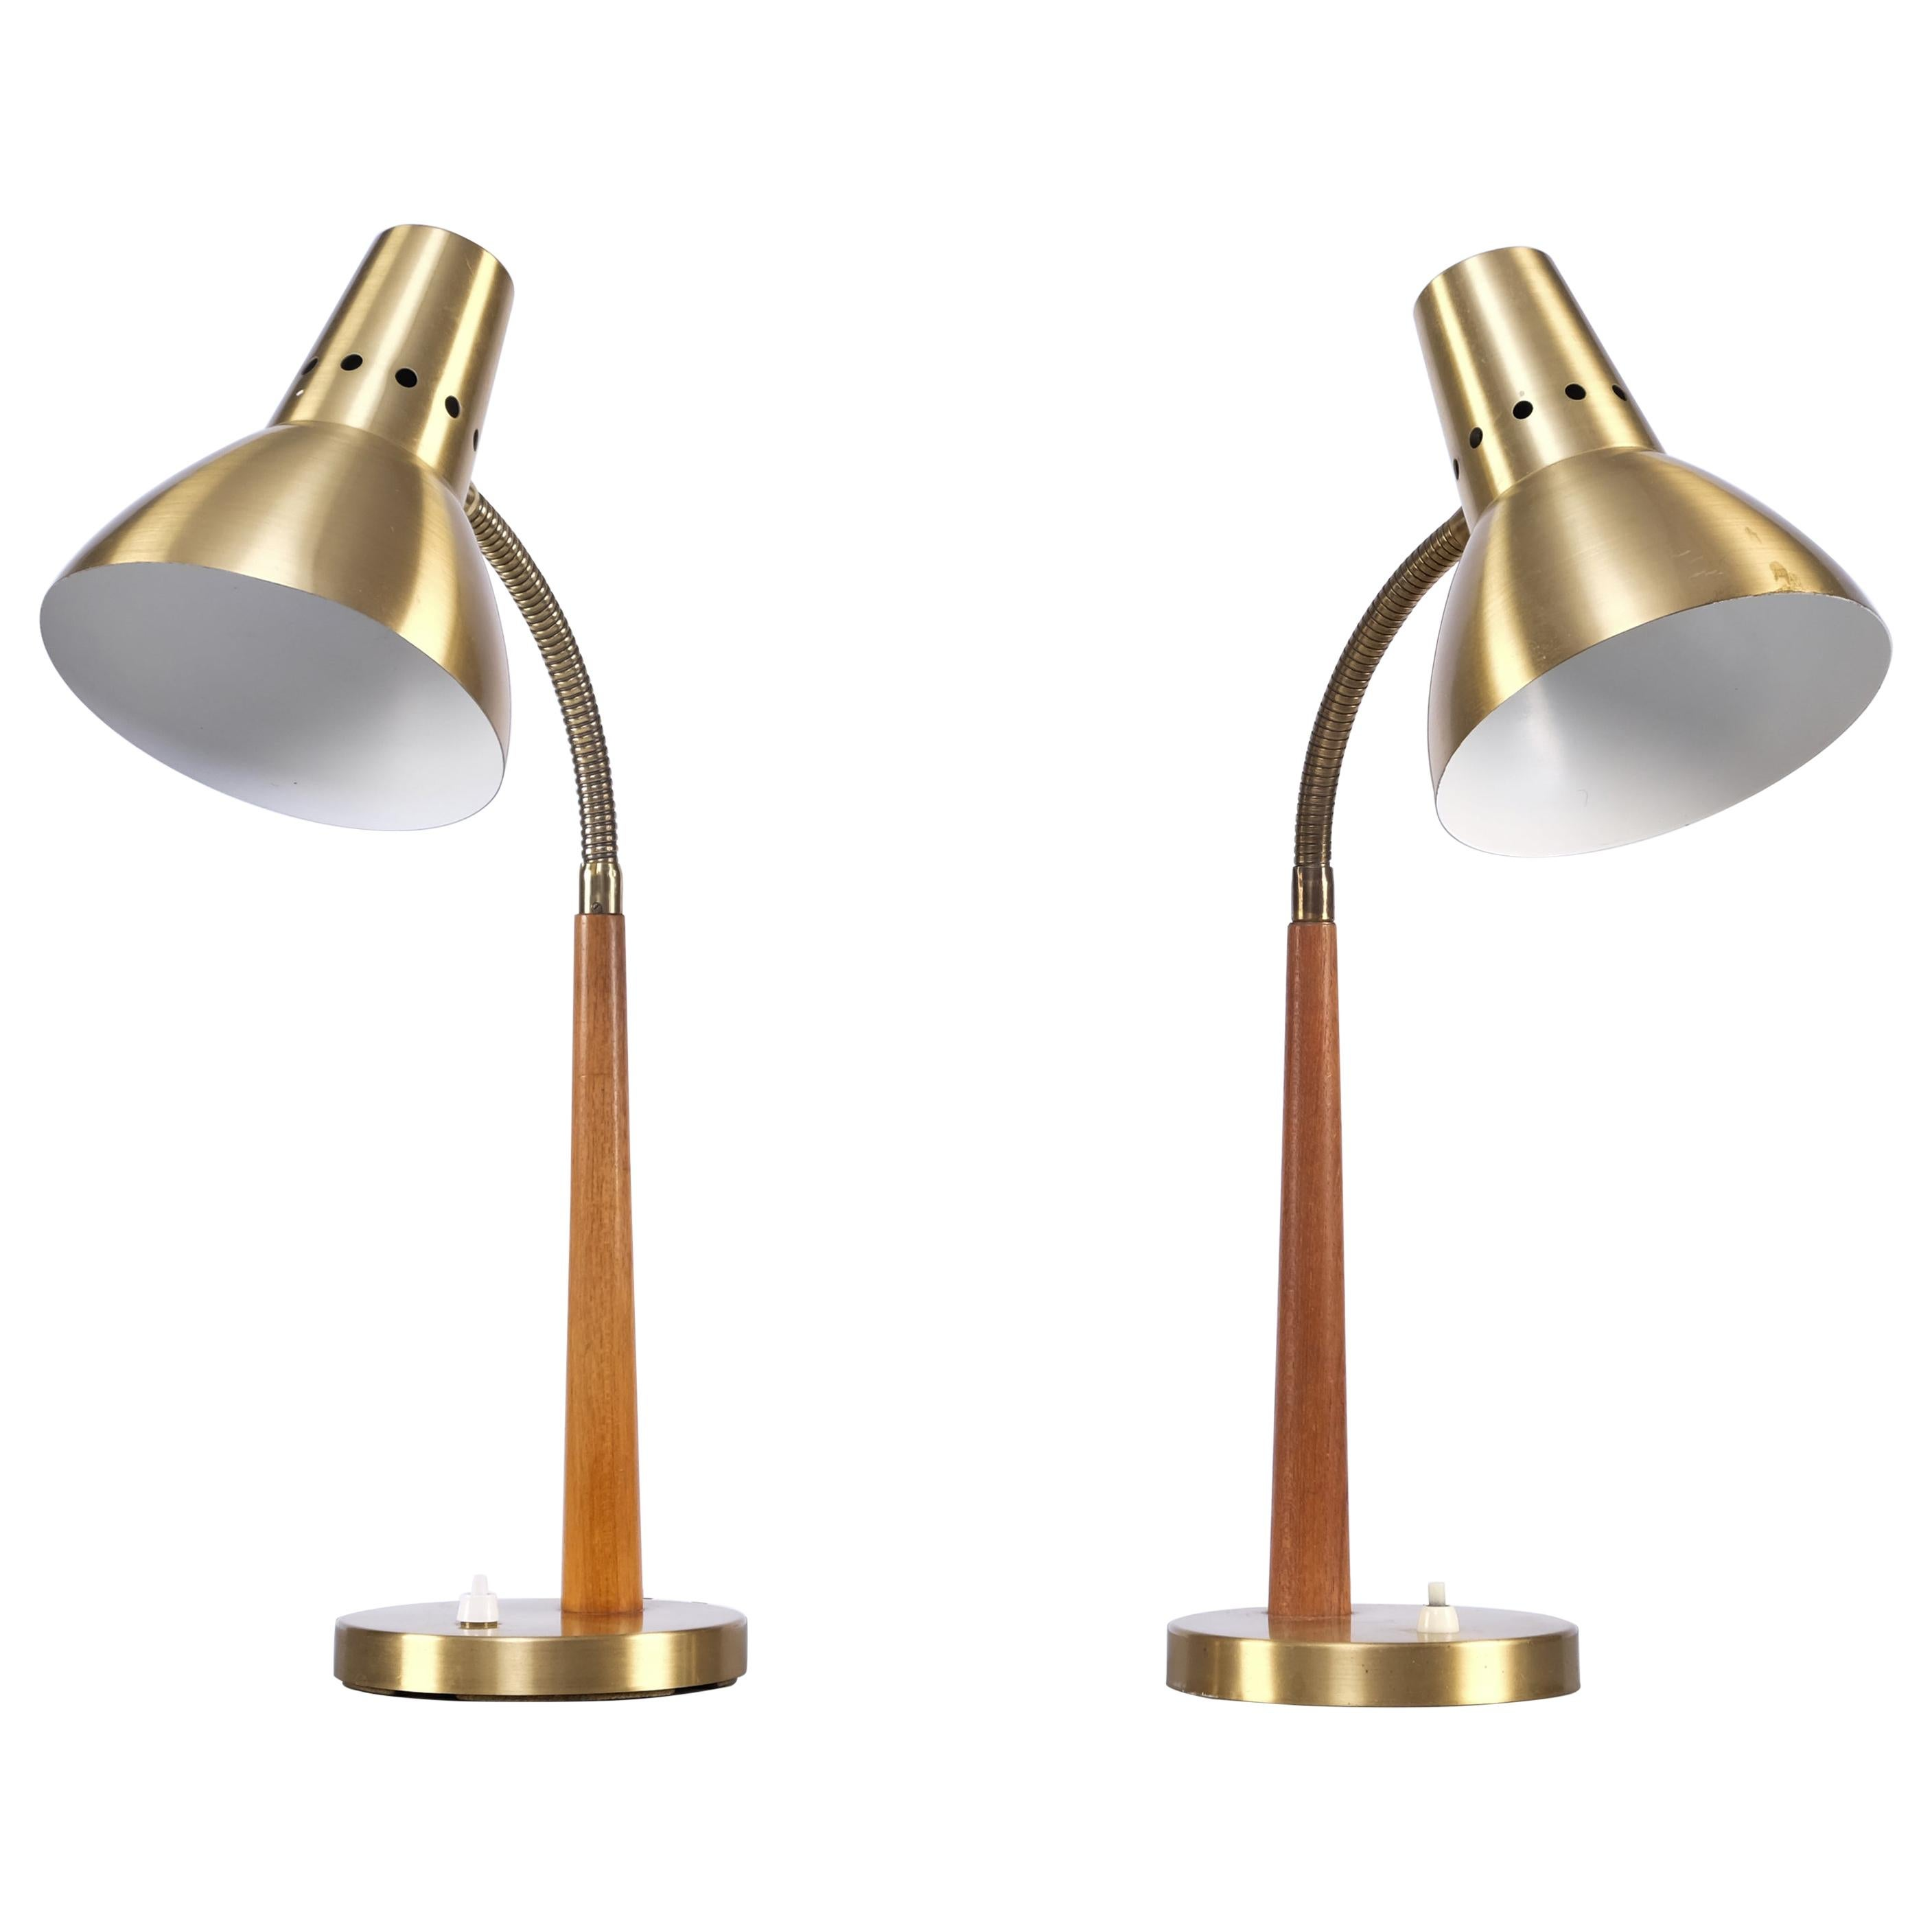 Set of 2 Swedish Table Lamps by Boréns, 1960s